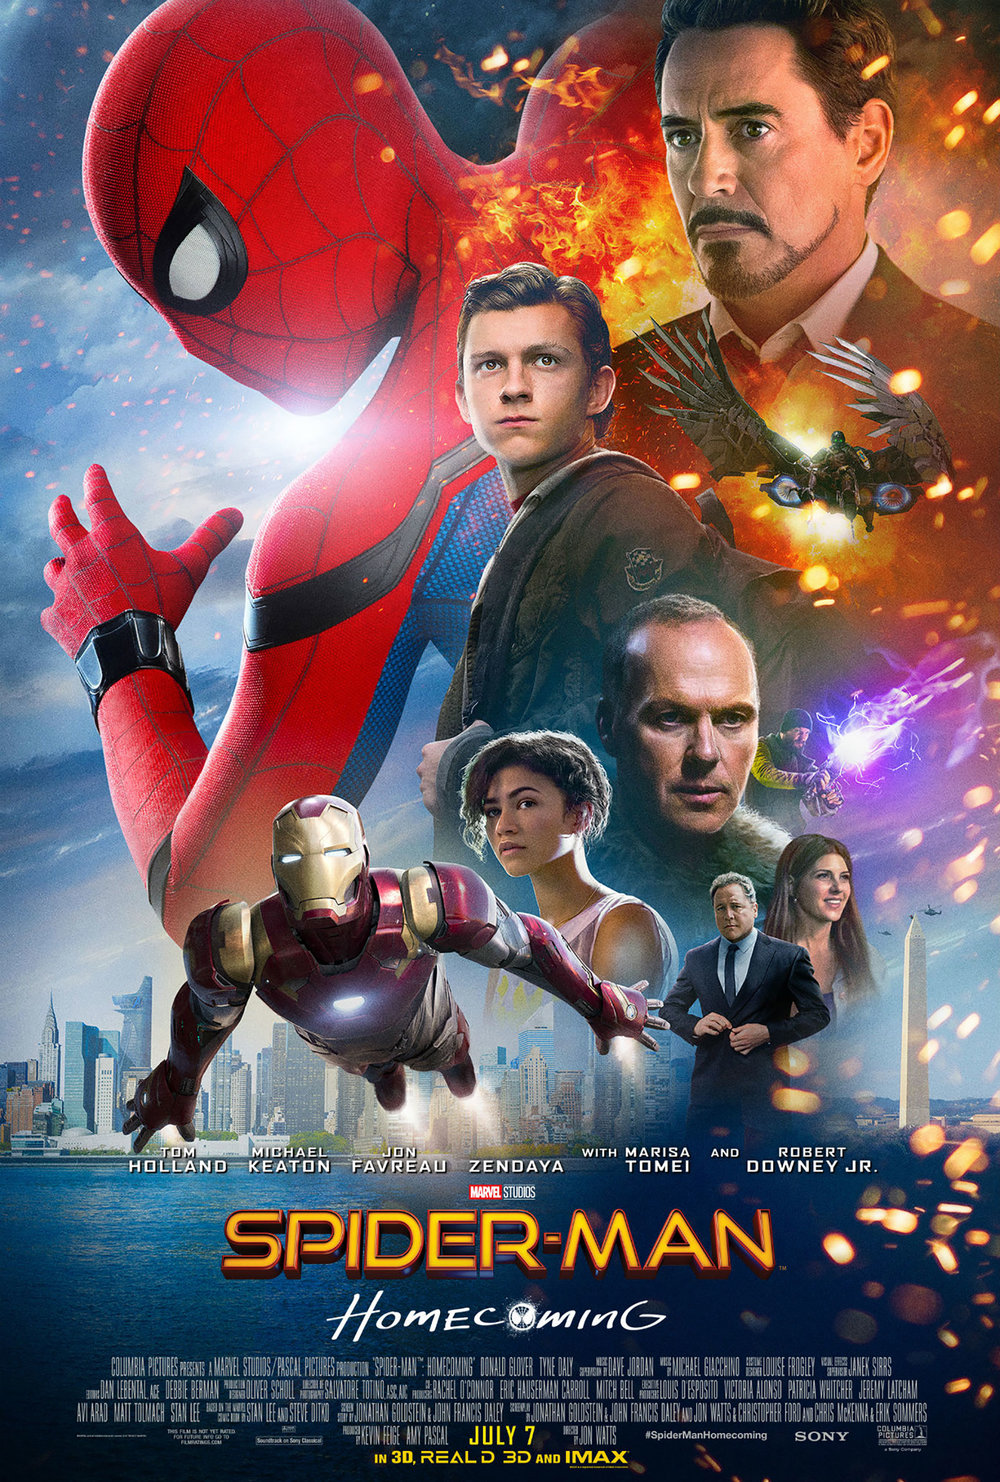 Spiderman-poster-7-large.jpg